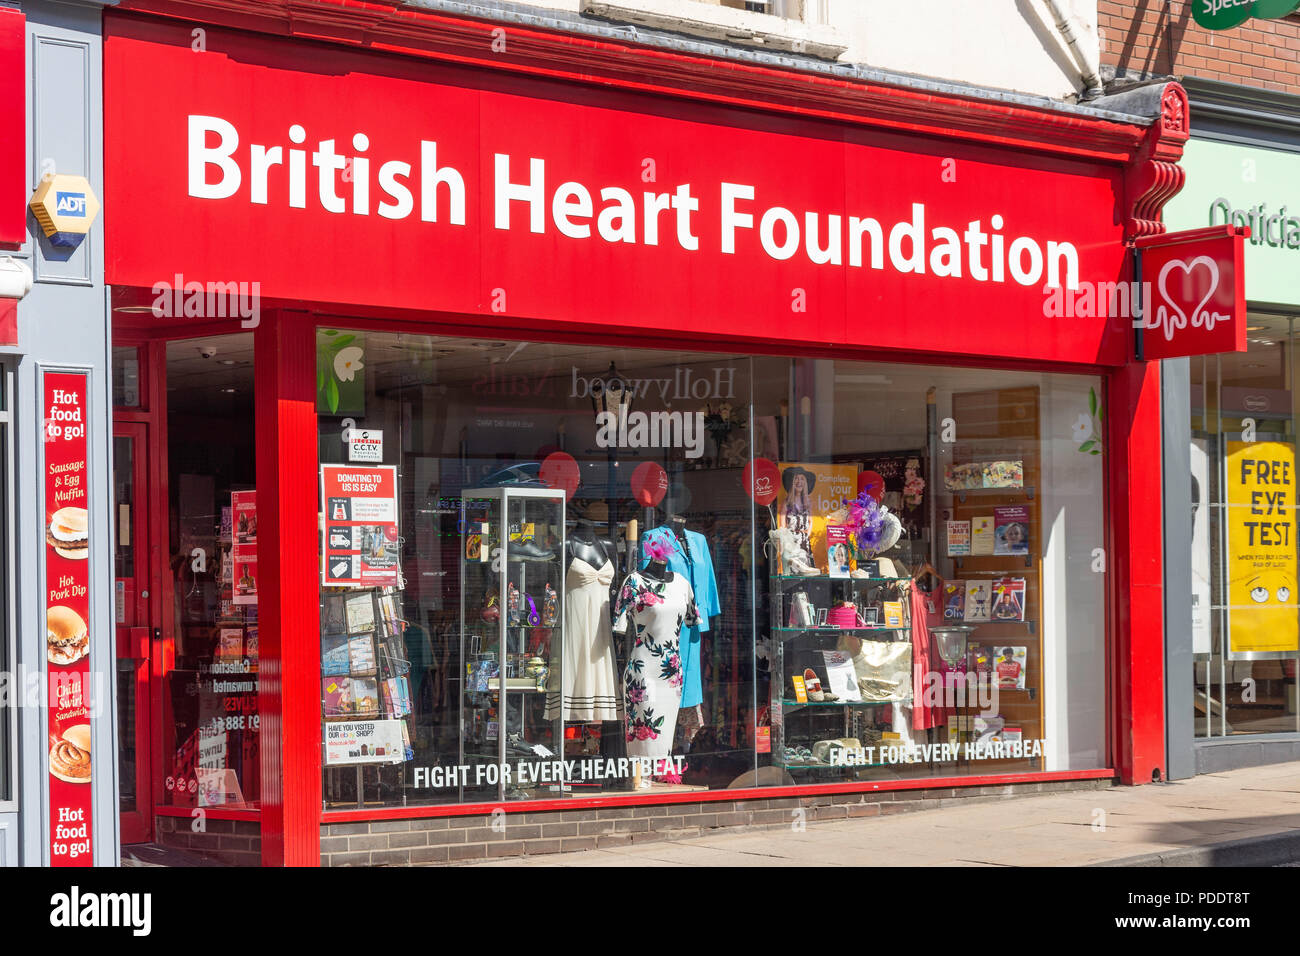 British Heart Foundation charity shop, Front Street, Chester-le-Street, County Durham, England, United Kingdom - Stock Image